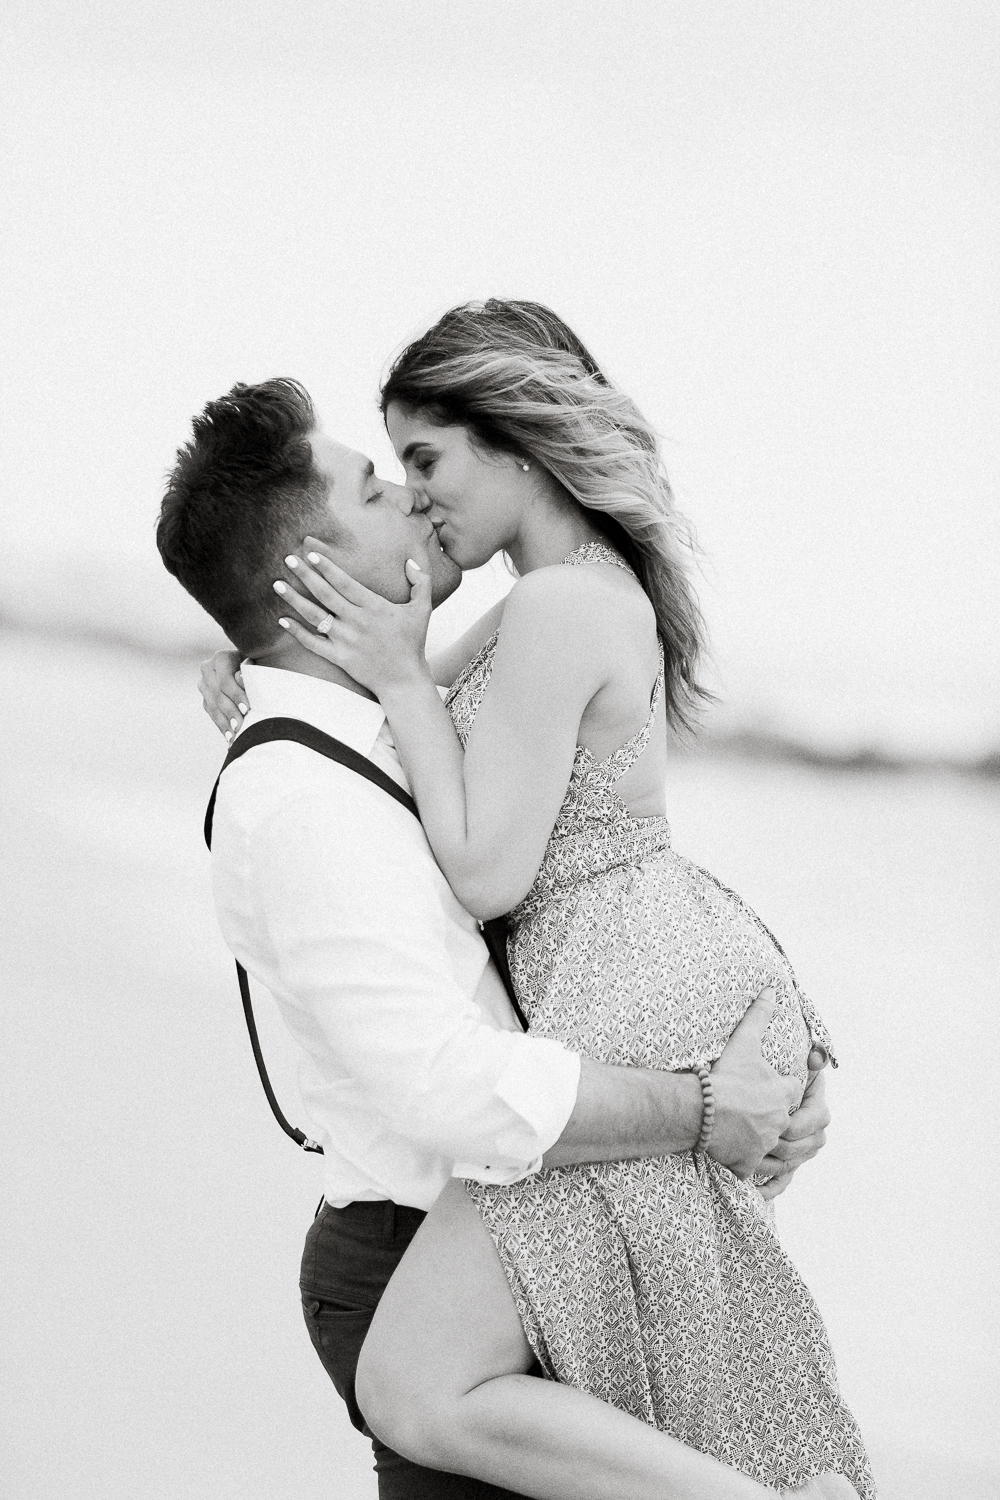 Sexy engagement photo ideas on the beach